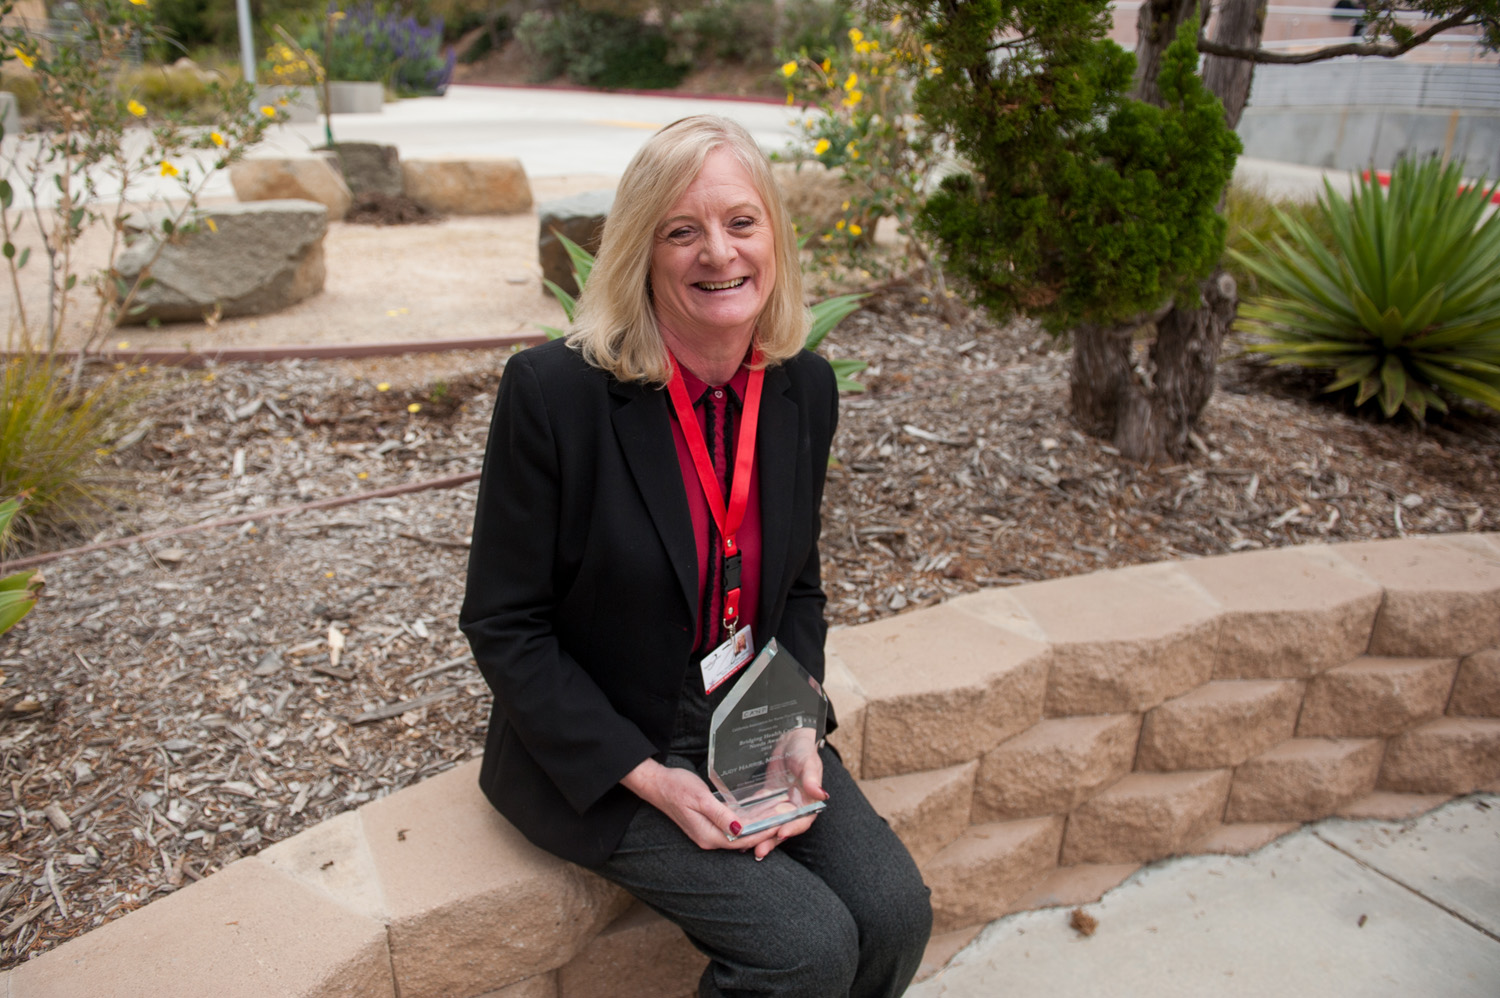 Student health director honored for 'bridging health care needs'